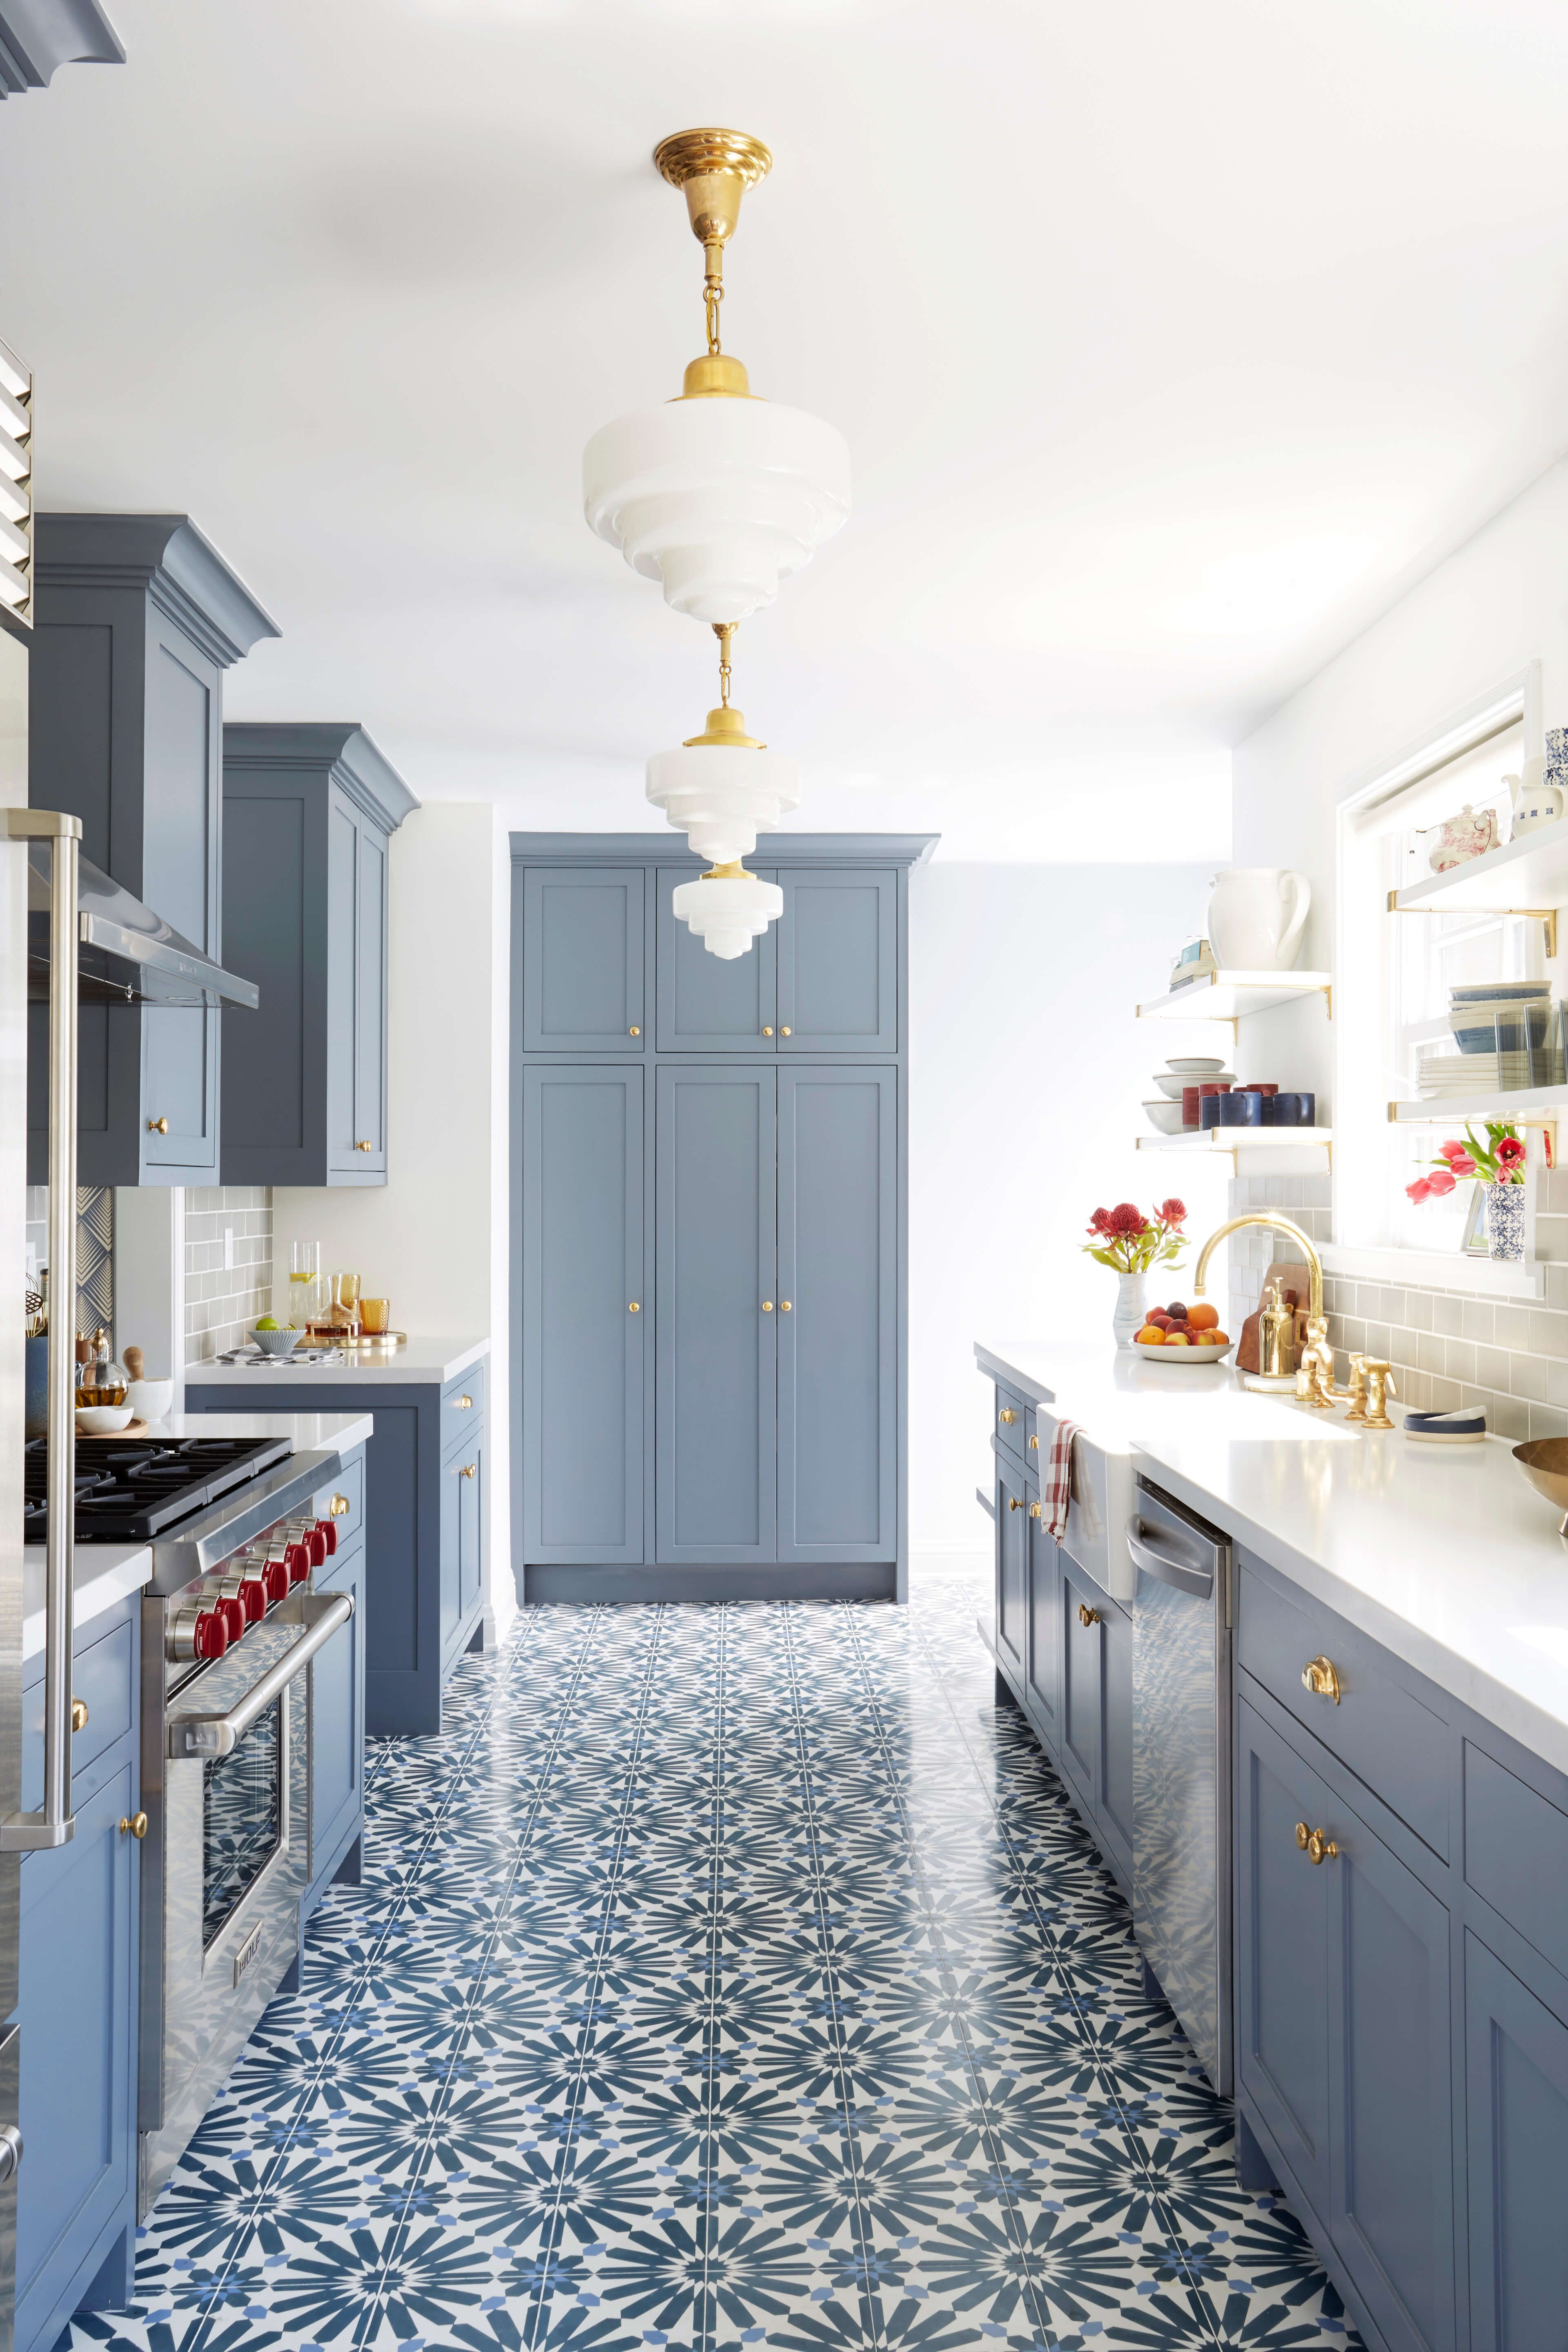 Interior Designs Of Houses And Kitchens Justicearea Com